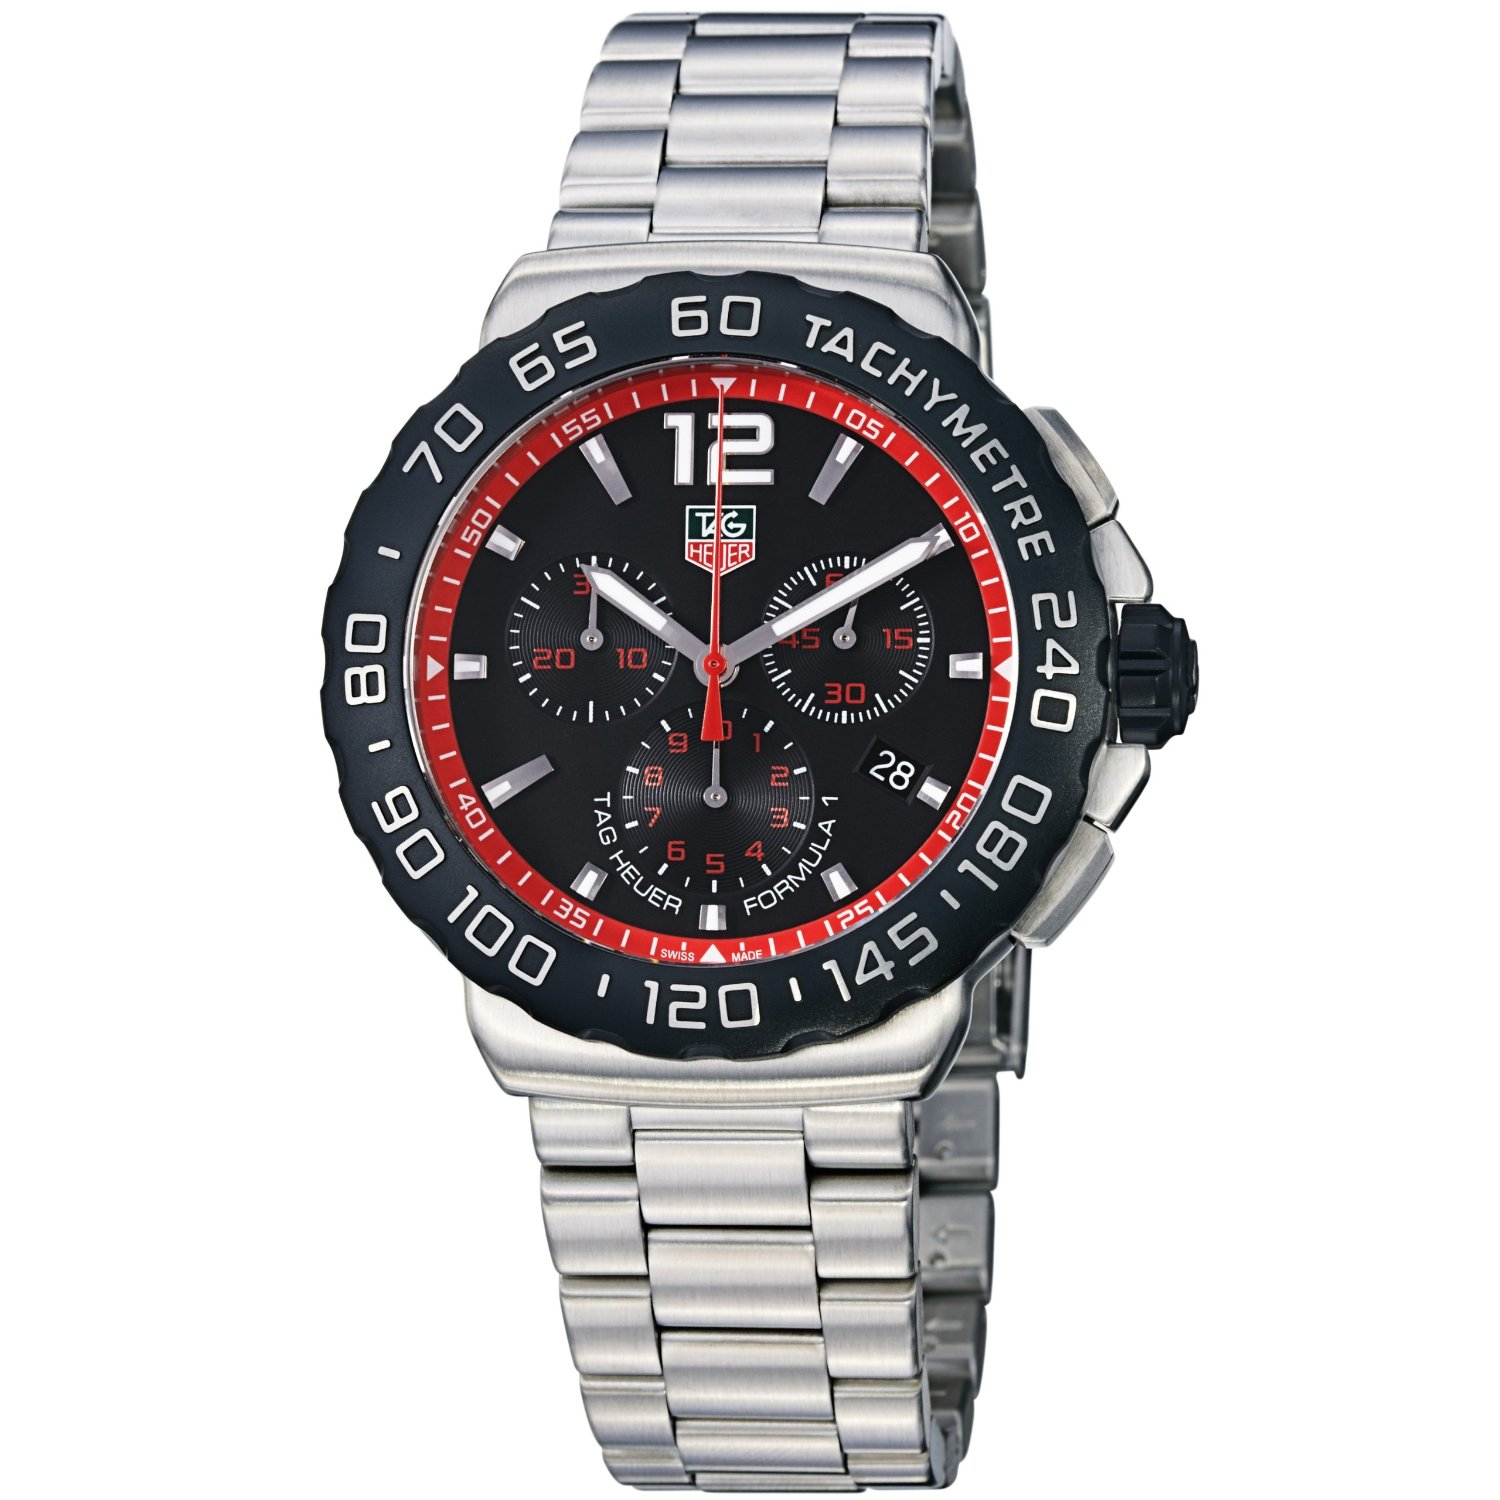 ba0858 tag heuer mens formula 1 chronograph black red dial ba0858 tag heuer mens formula 1 chronograph black red dial stainless steel watch